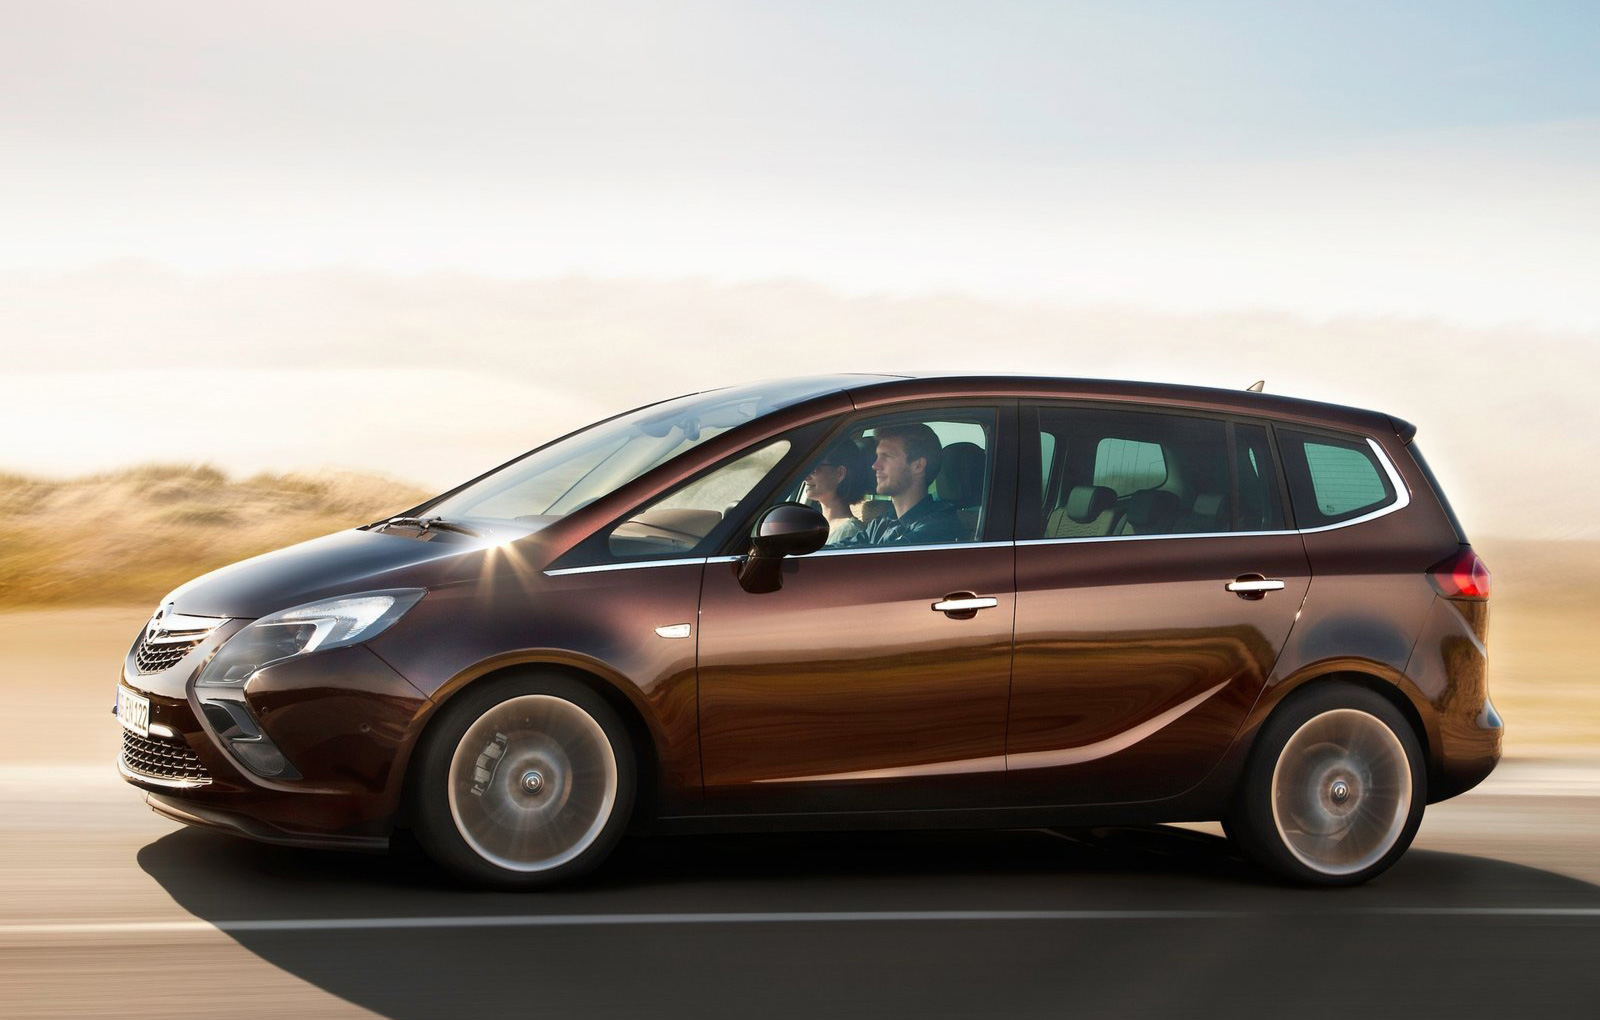 New Opel Zafira 2018 >> 2016 Opel Zafira Will Be Built in France at Peugeot Factory - autoevolution